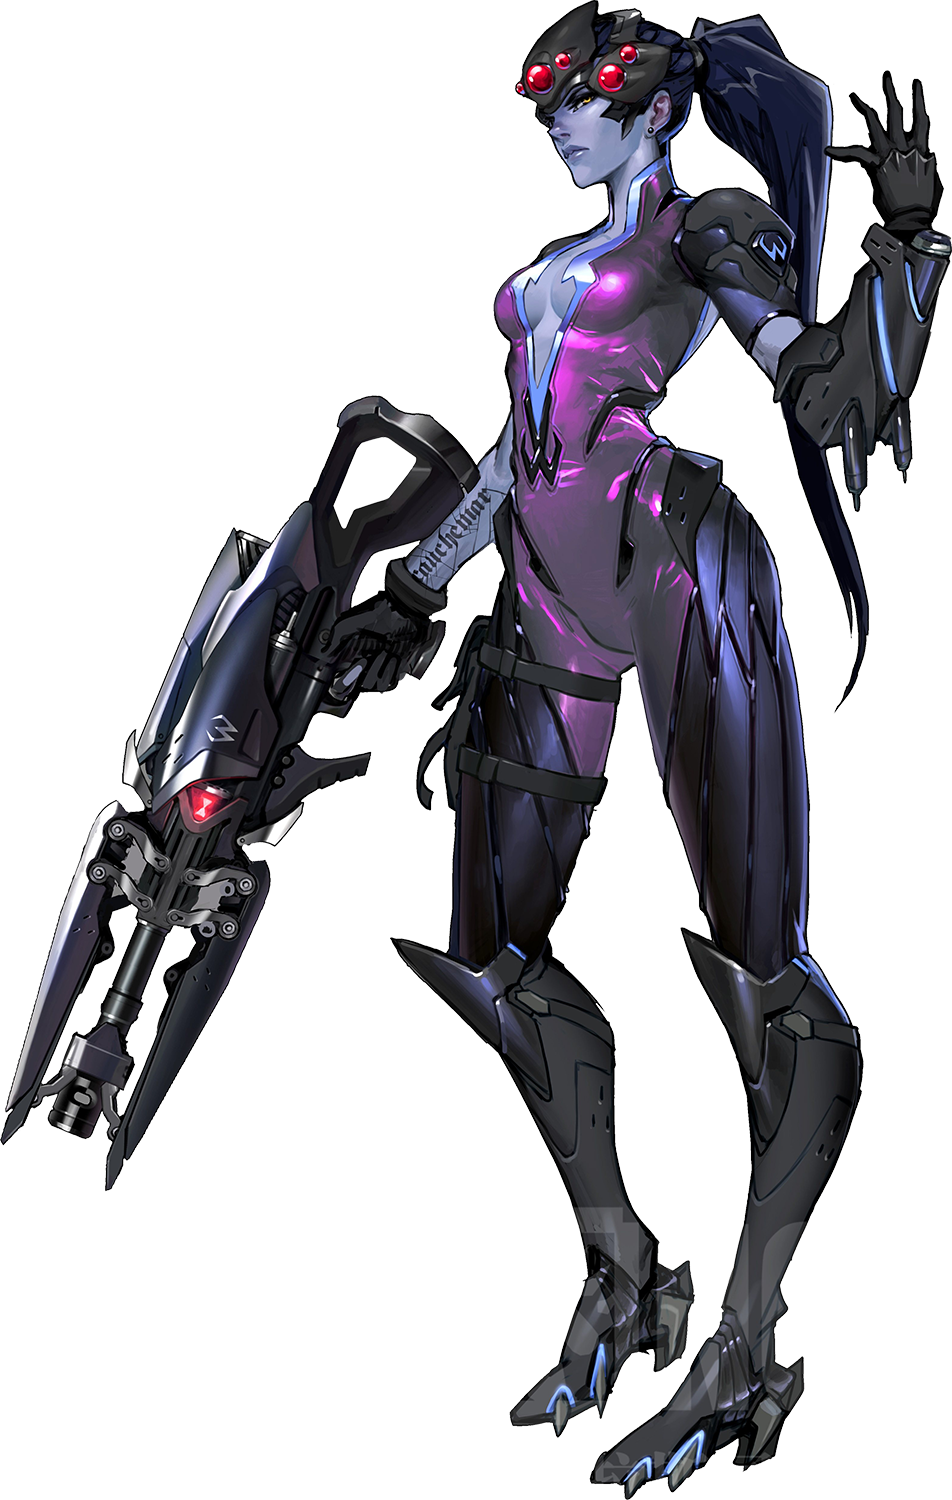 Overwatch transparent png. Image widowmakerplate wiki fandom